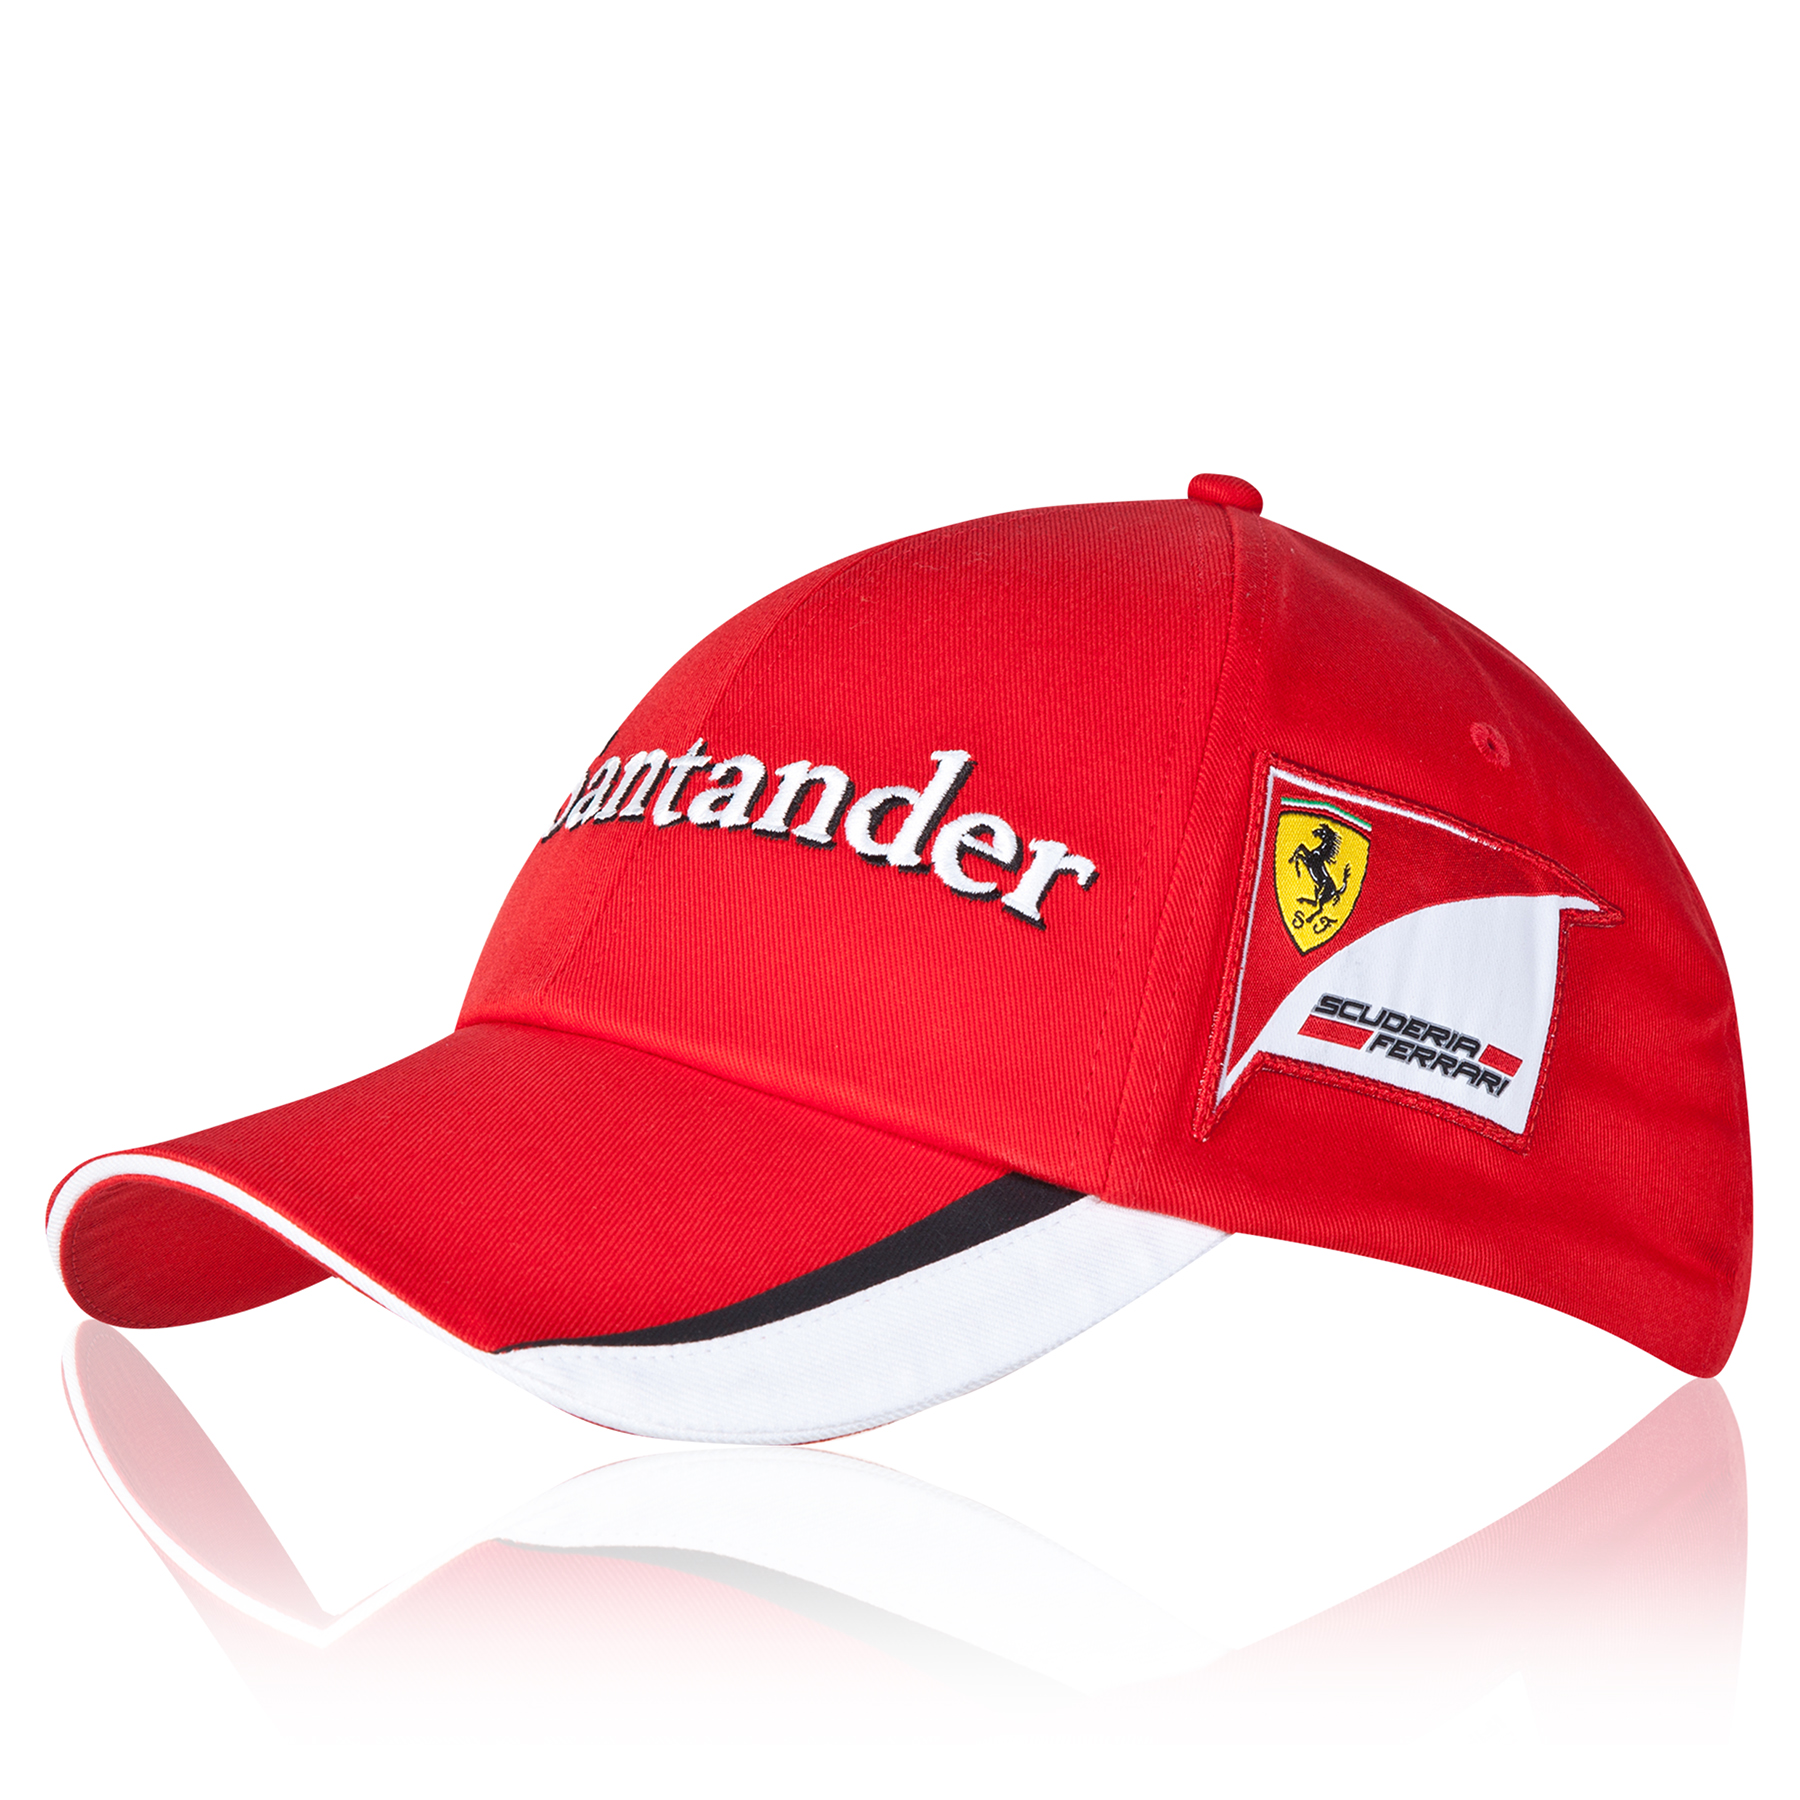 Scuderia Ferrari 2015 Team Cap Red